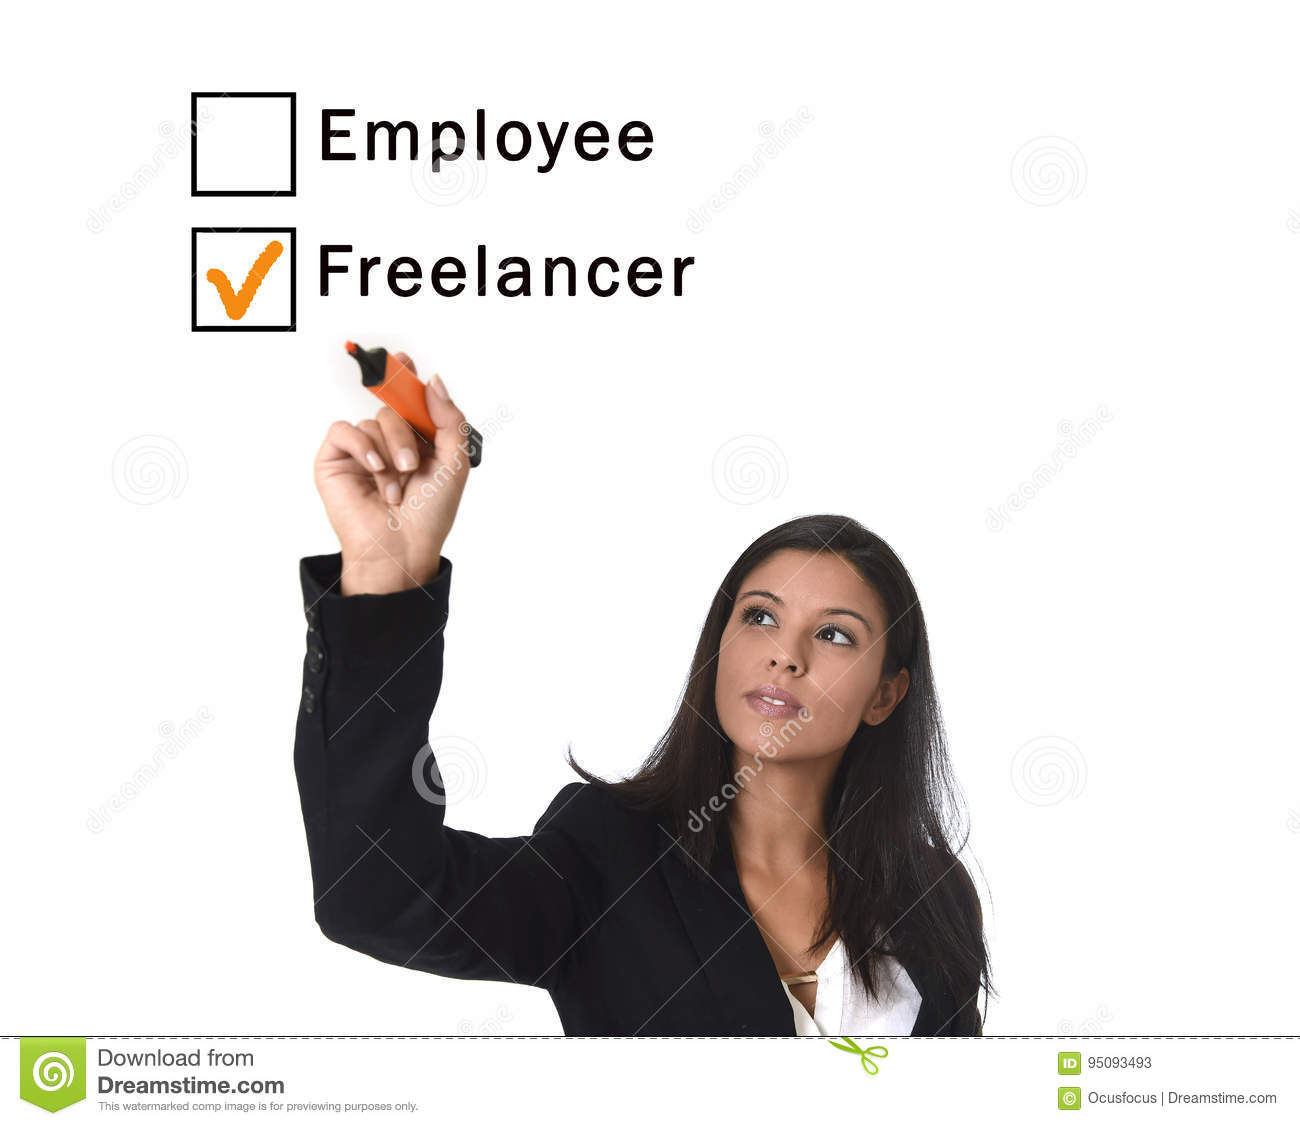 Latin woman in office suit writing with marker on screen or board ticking boxes employee freelance